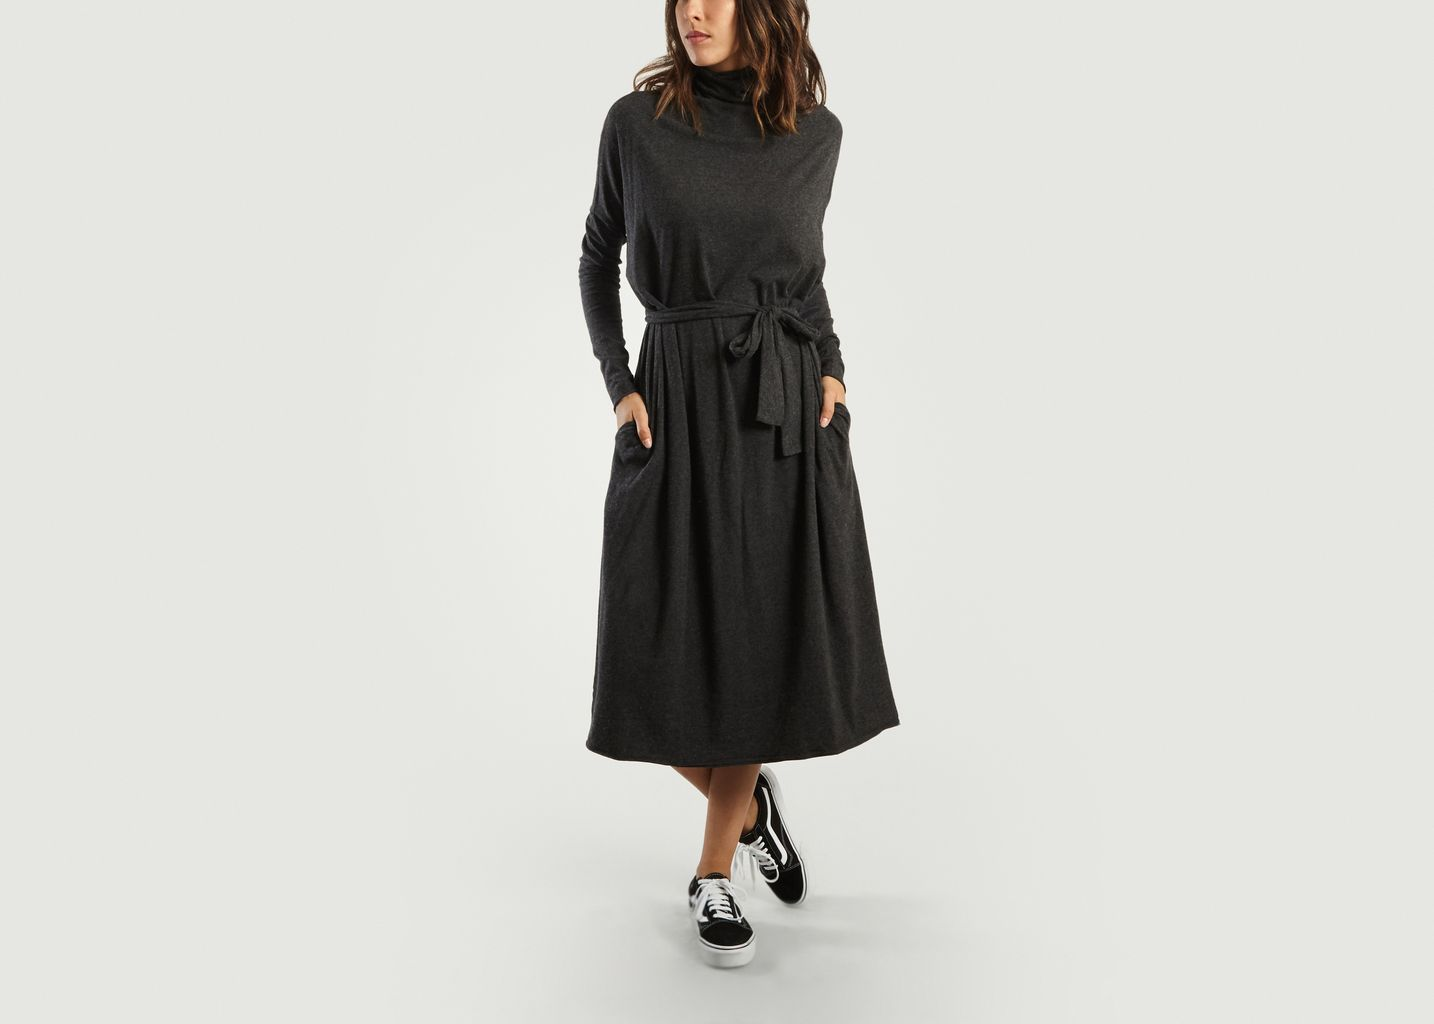 L'exception Vintage Anthracite Robe American Pipoun wFqx4x6H7